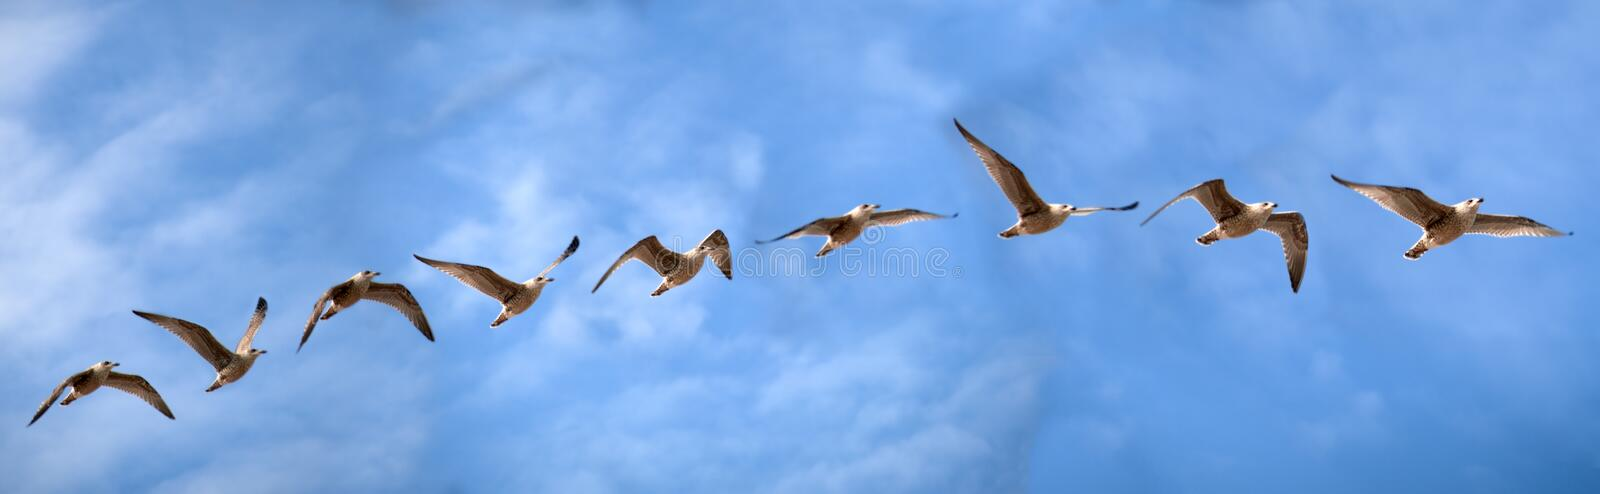 Bird flight study of a sea gull. Of the genus Dormant Gull with the flight movements of the wings in front of blue light cloudy sunny sky over the Baltic Sea royalty free stock images